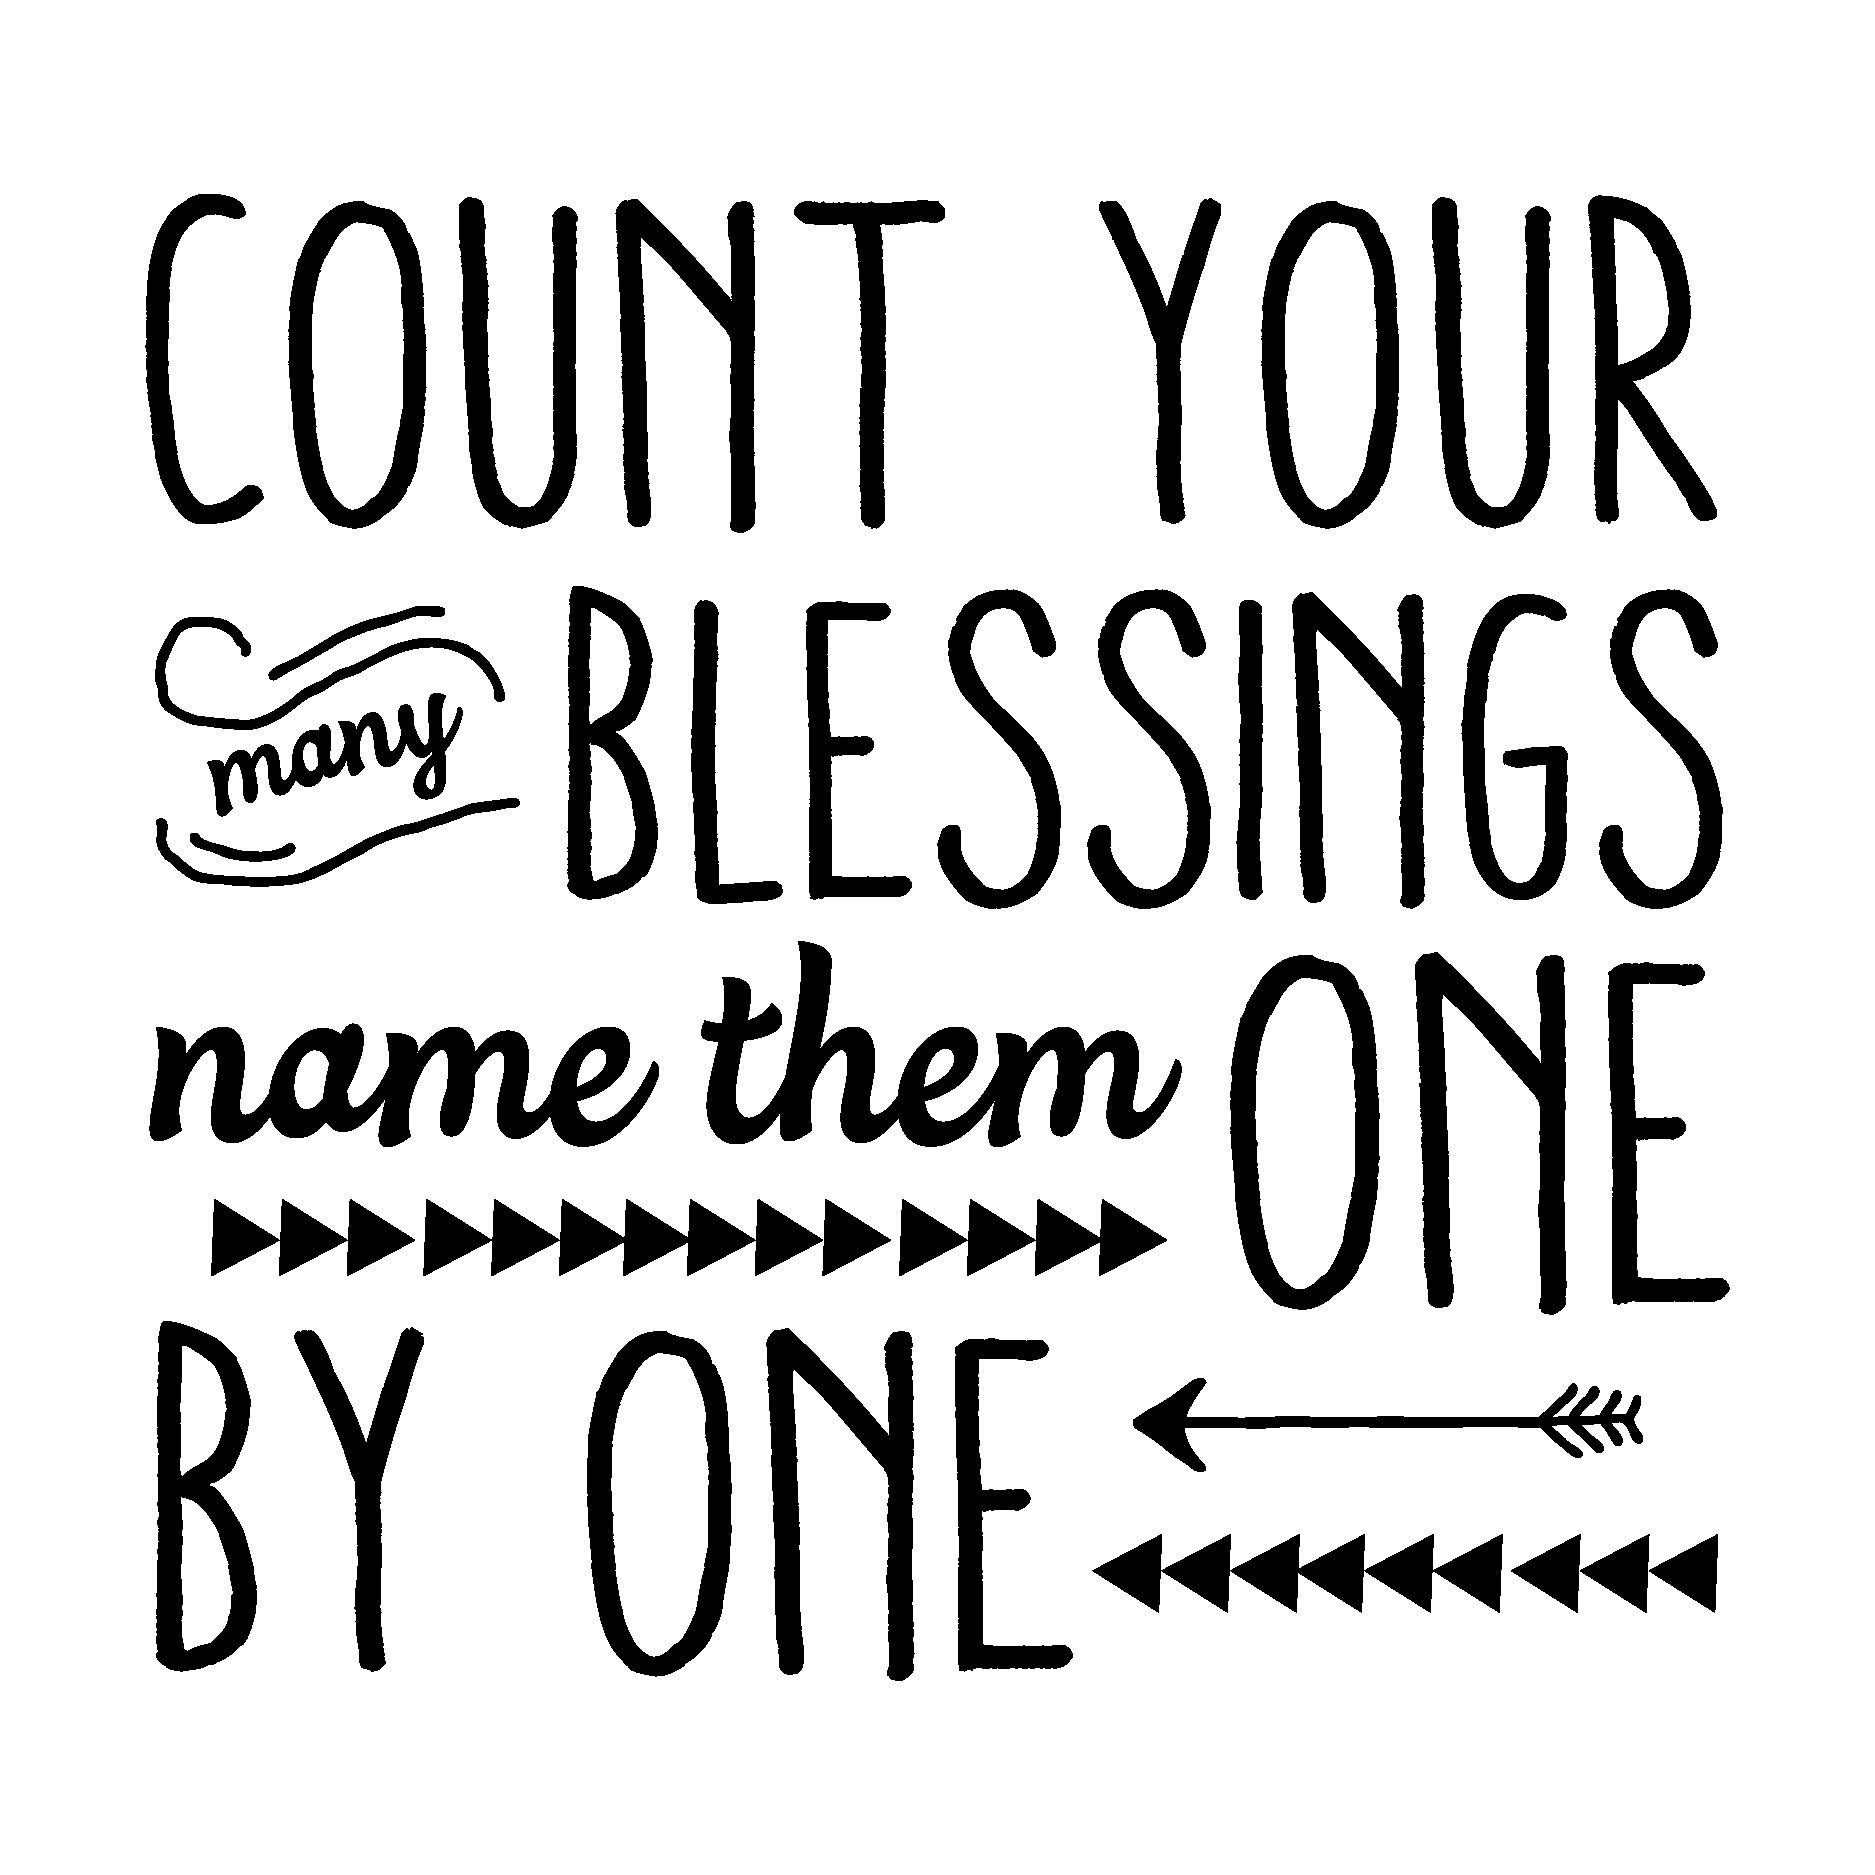 Blessings Quotes: Count Your Blessings Wall Quotes™ Decal